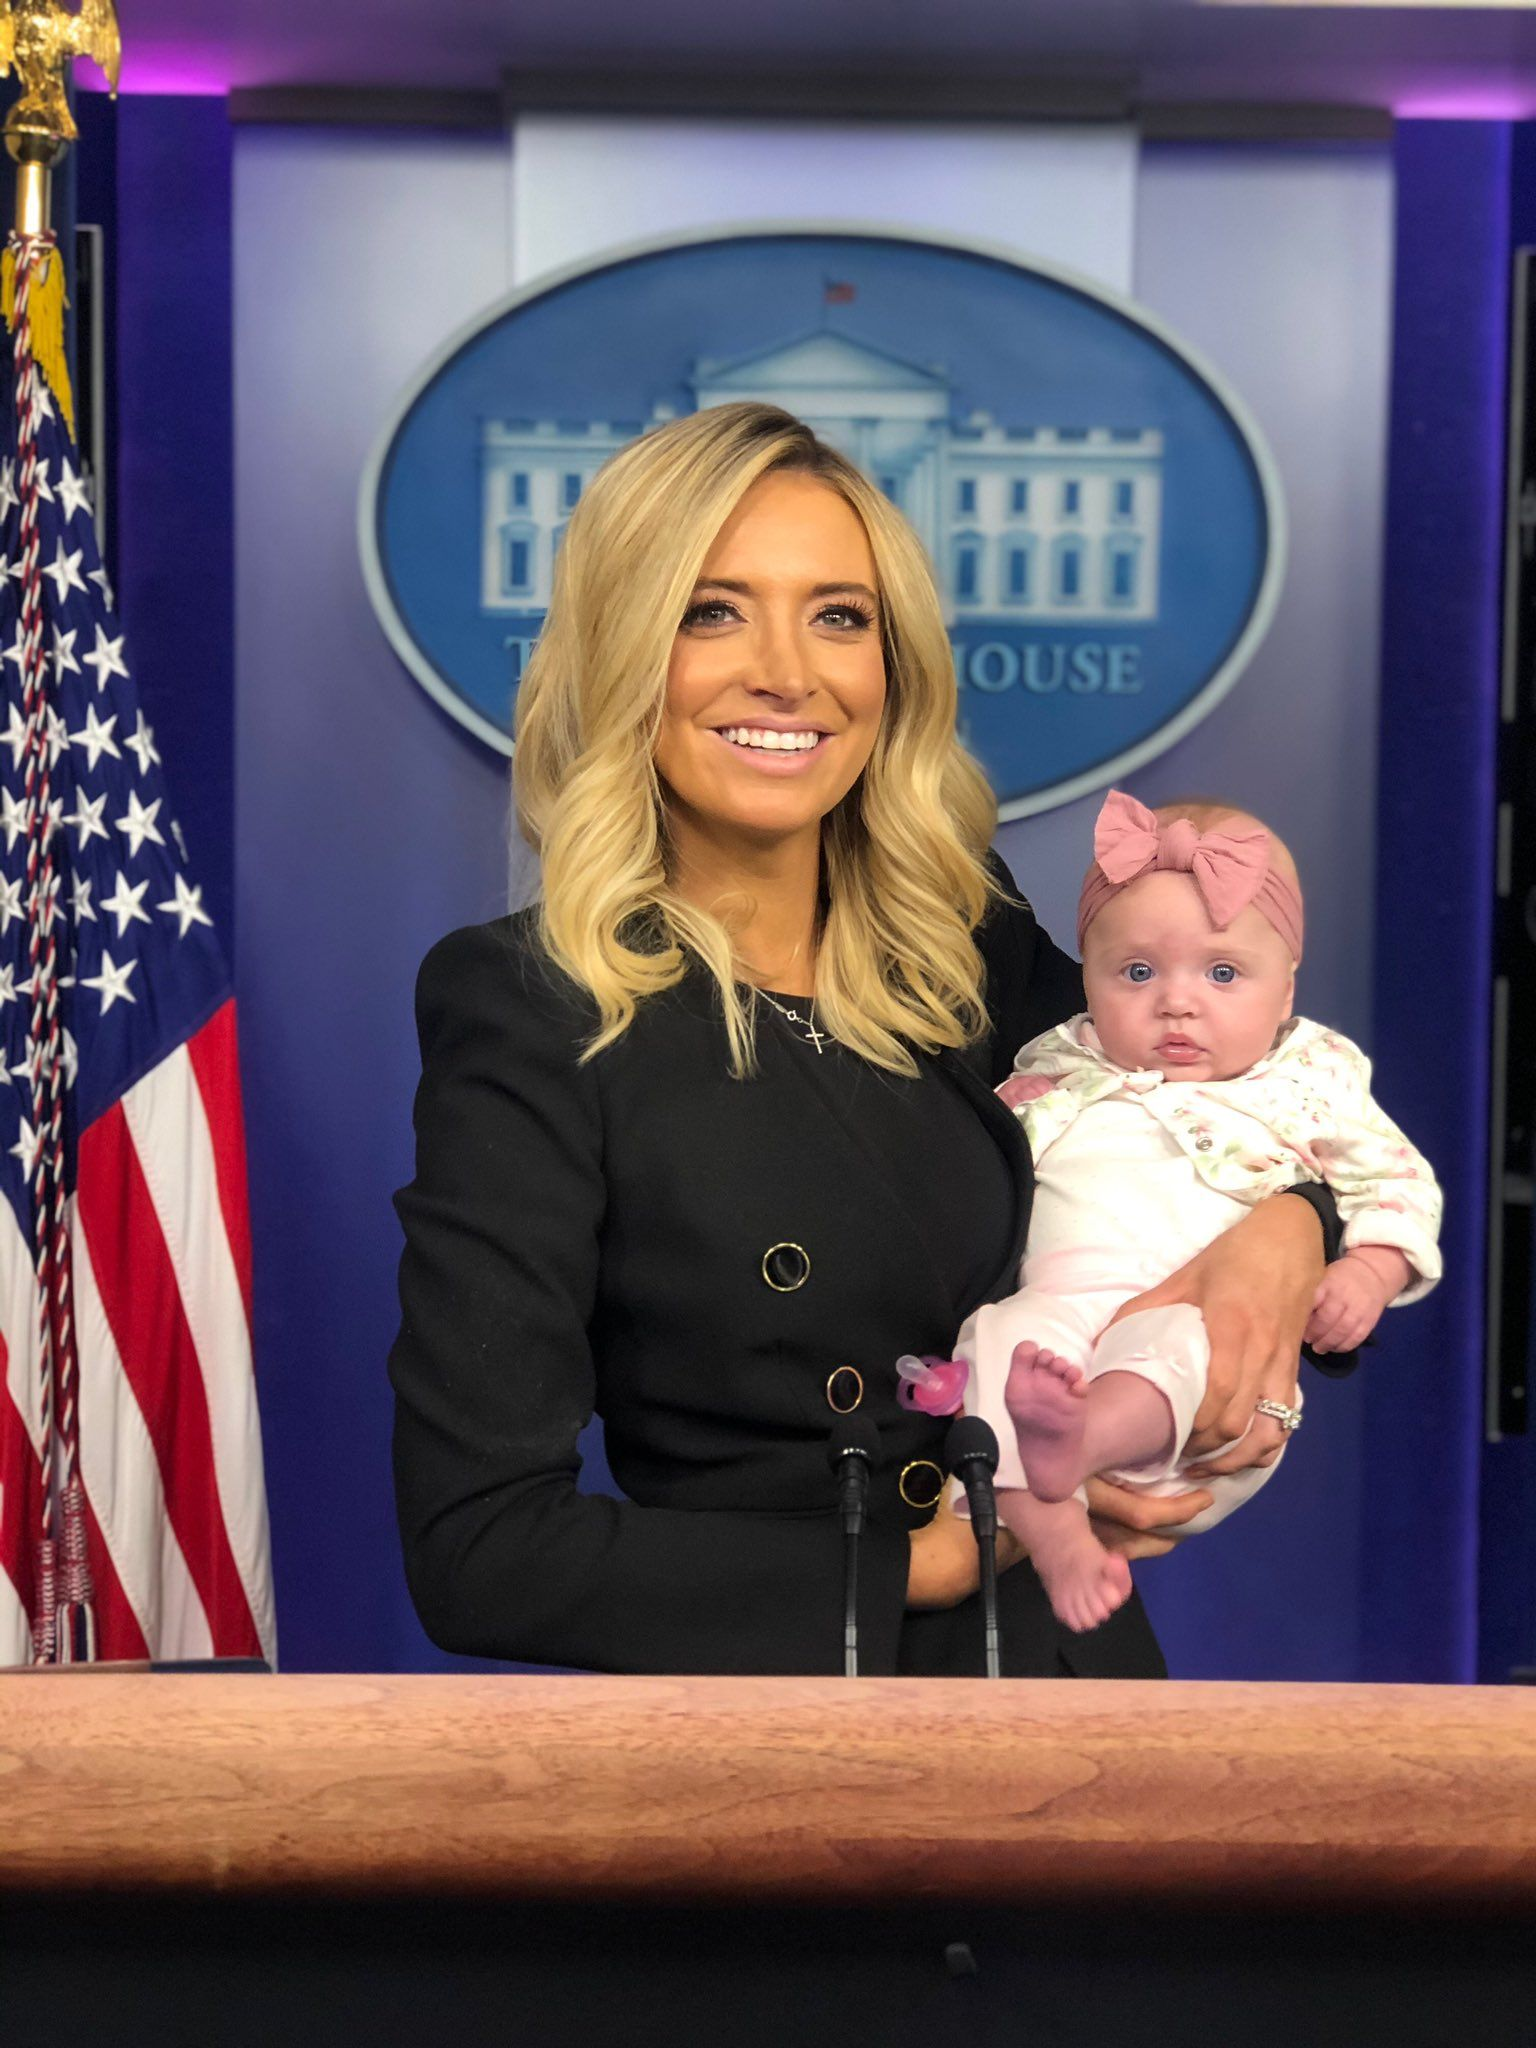 Kayleigh Mcenany Bio Height Weight Age Net Worth Husband Family News In 2020 Kayleigh Mcenany Trump Press Secretary Fit Women